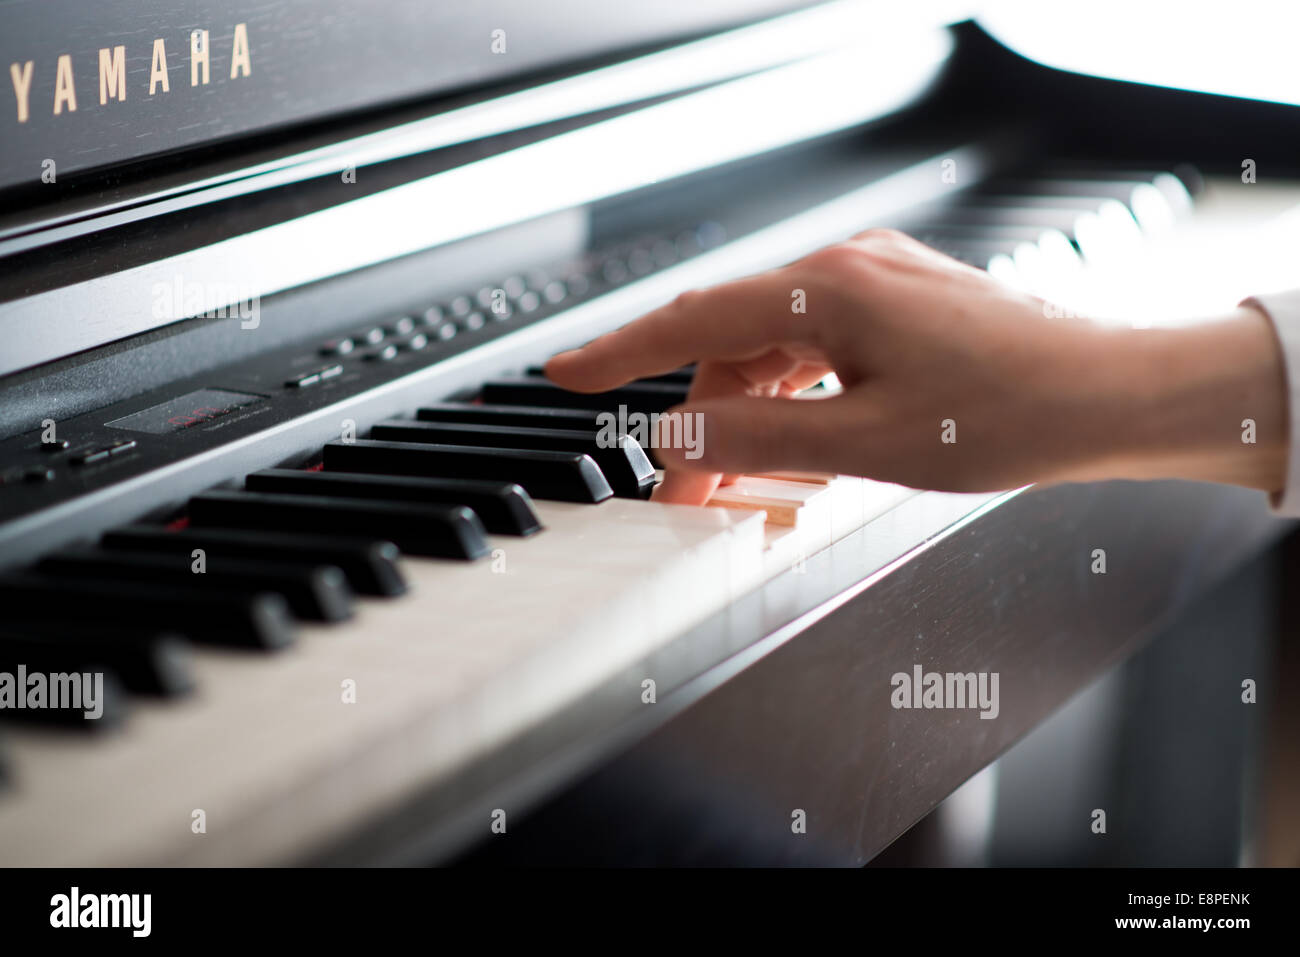 Practicing and learning Piano - Stock Image